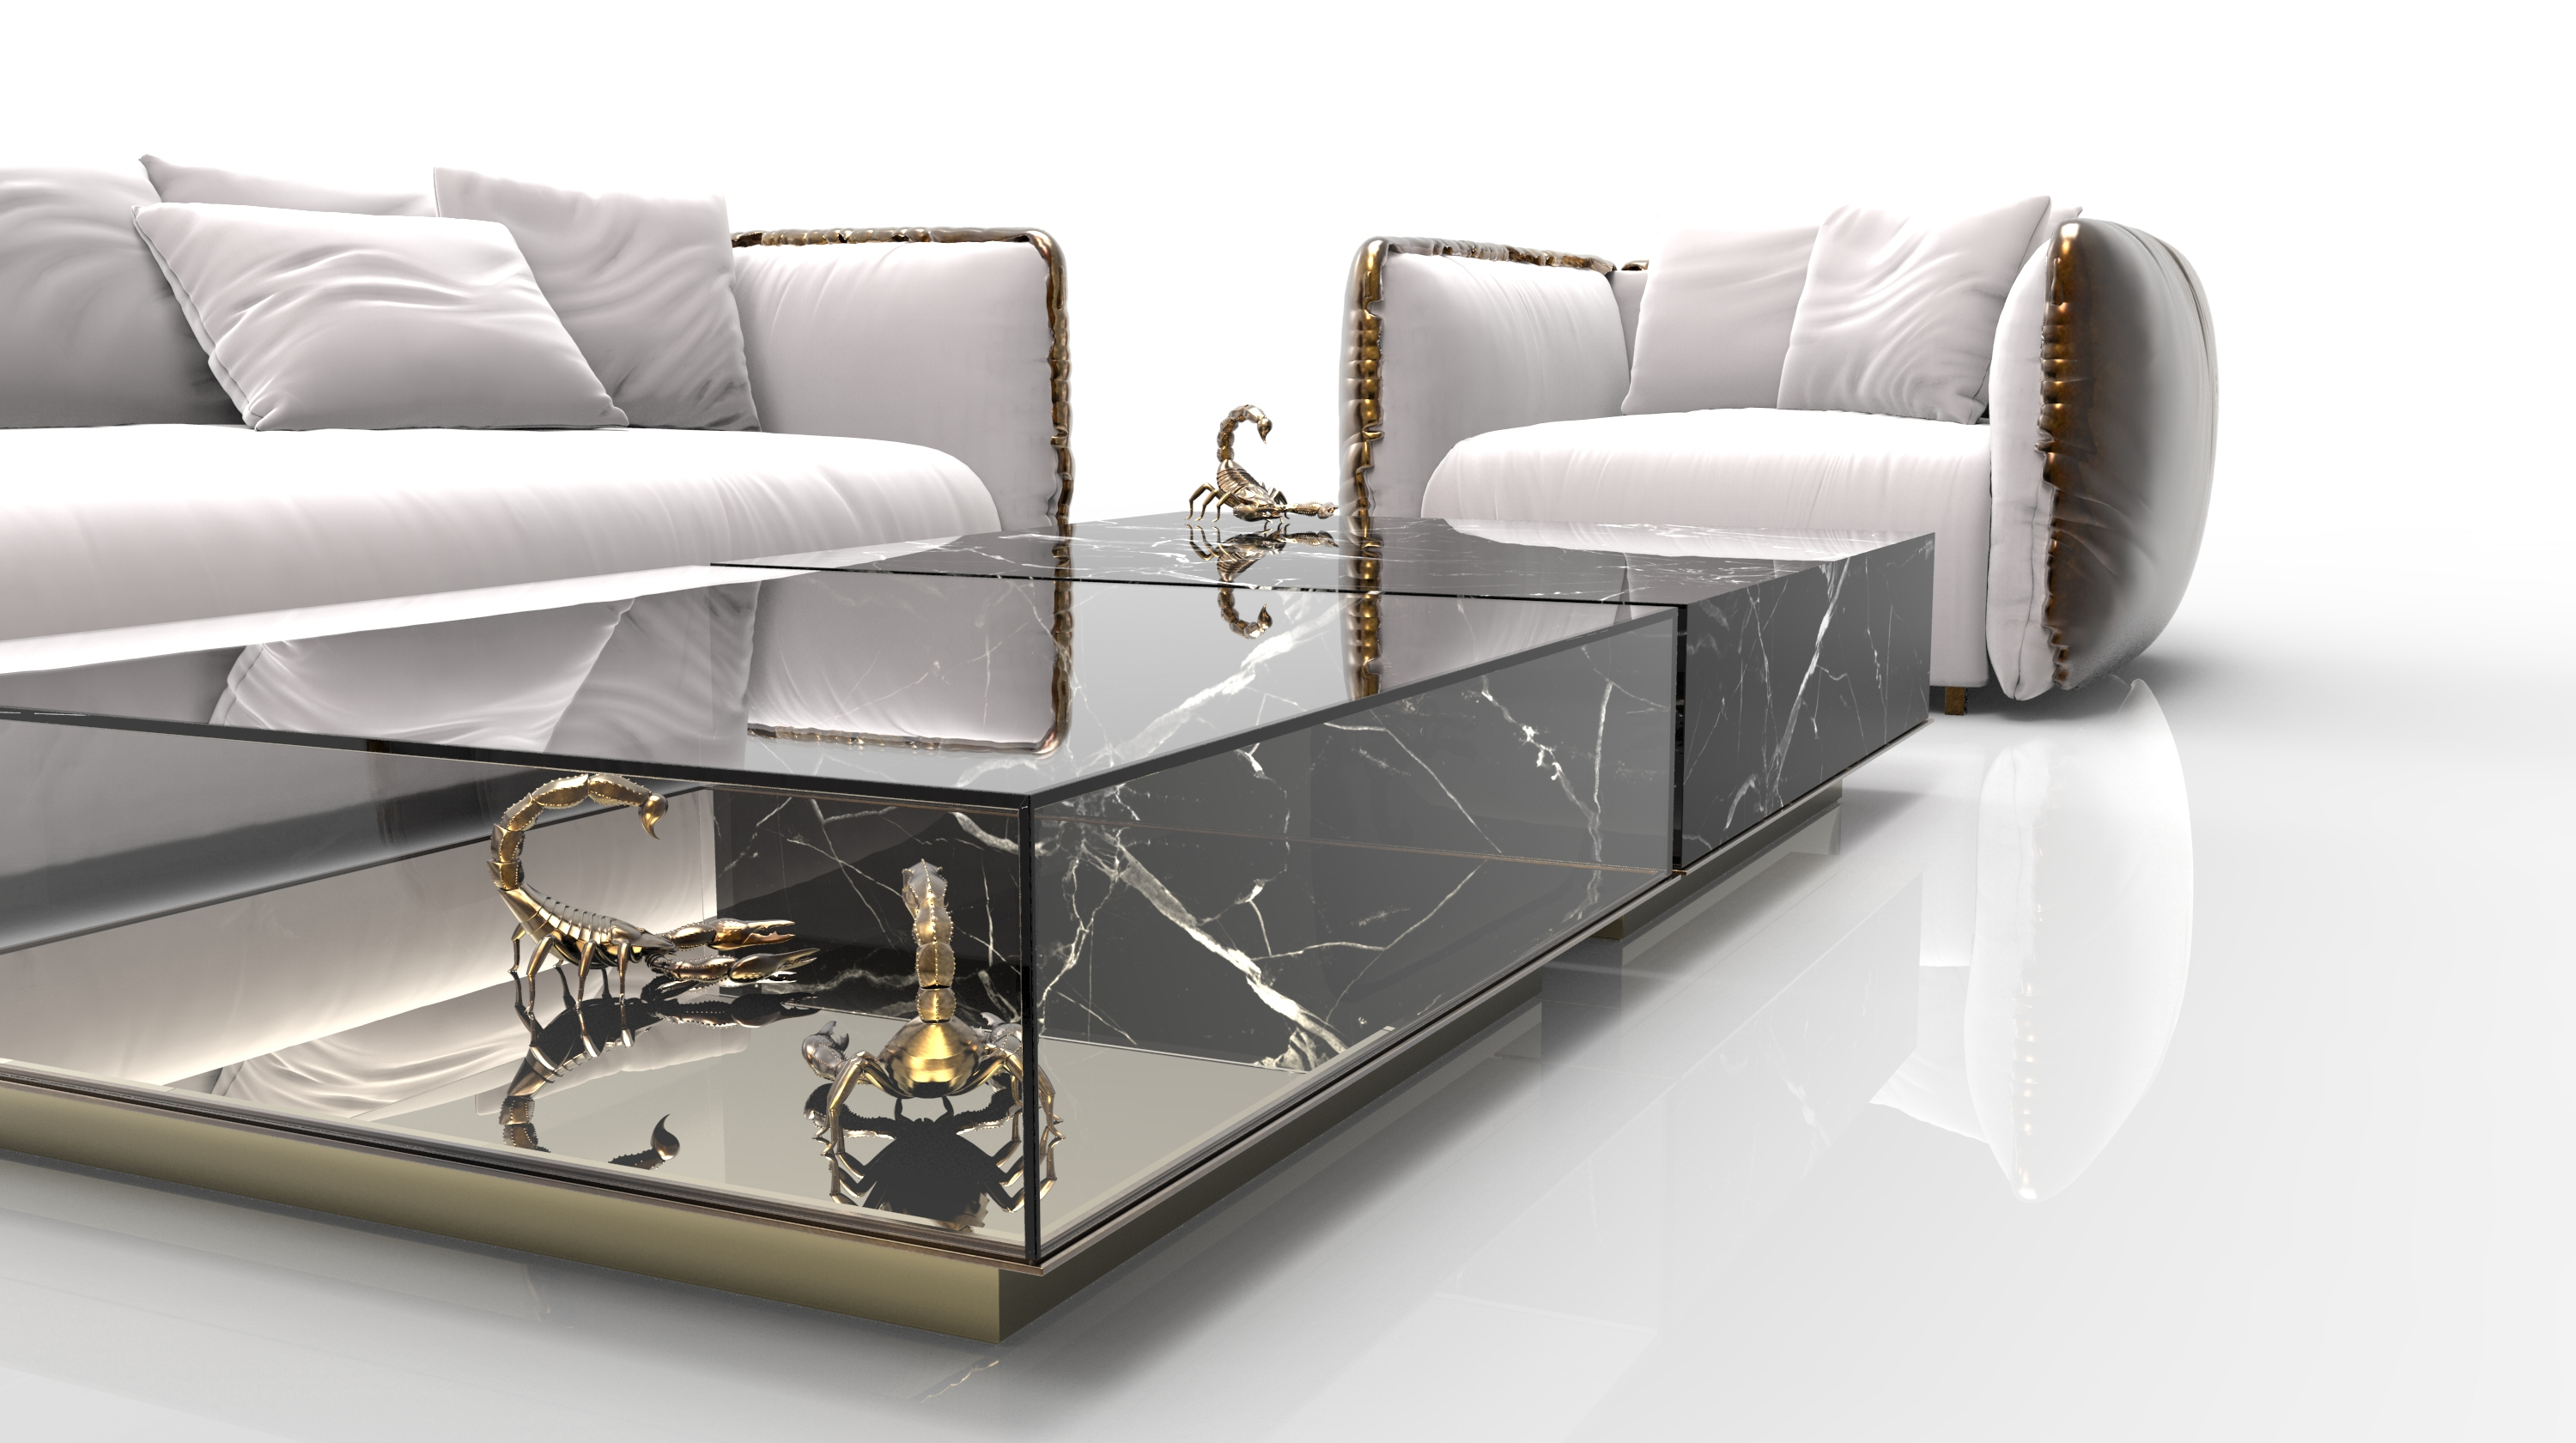 2 Tone Grey And White Marble Coffee Tables With Regard To Latest Marble Coffee And Side Table Designs On Home Interiors (View 20 of 20)